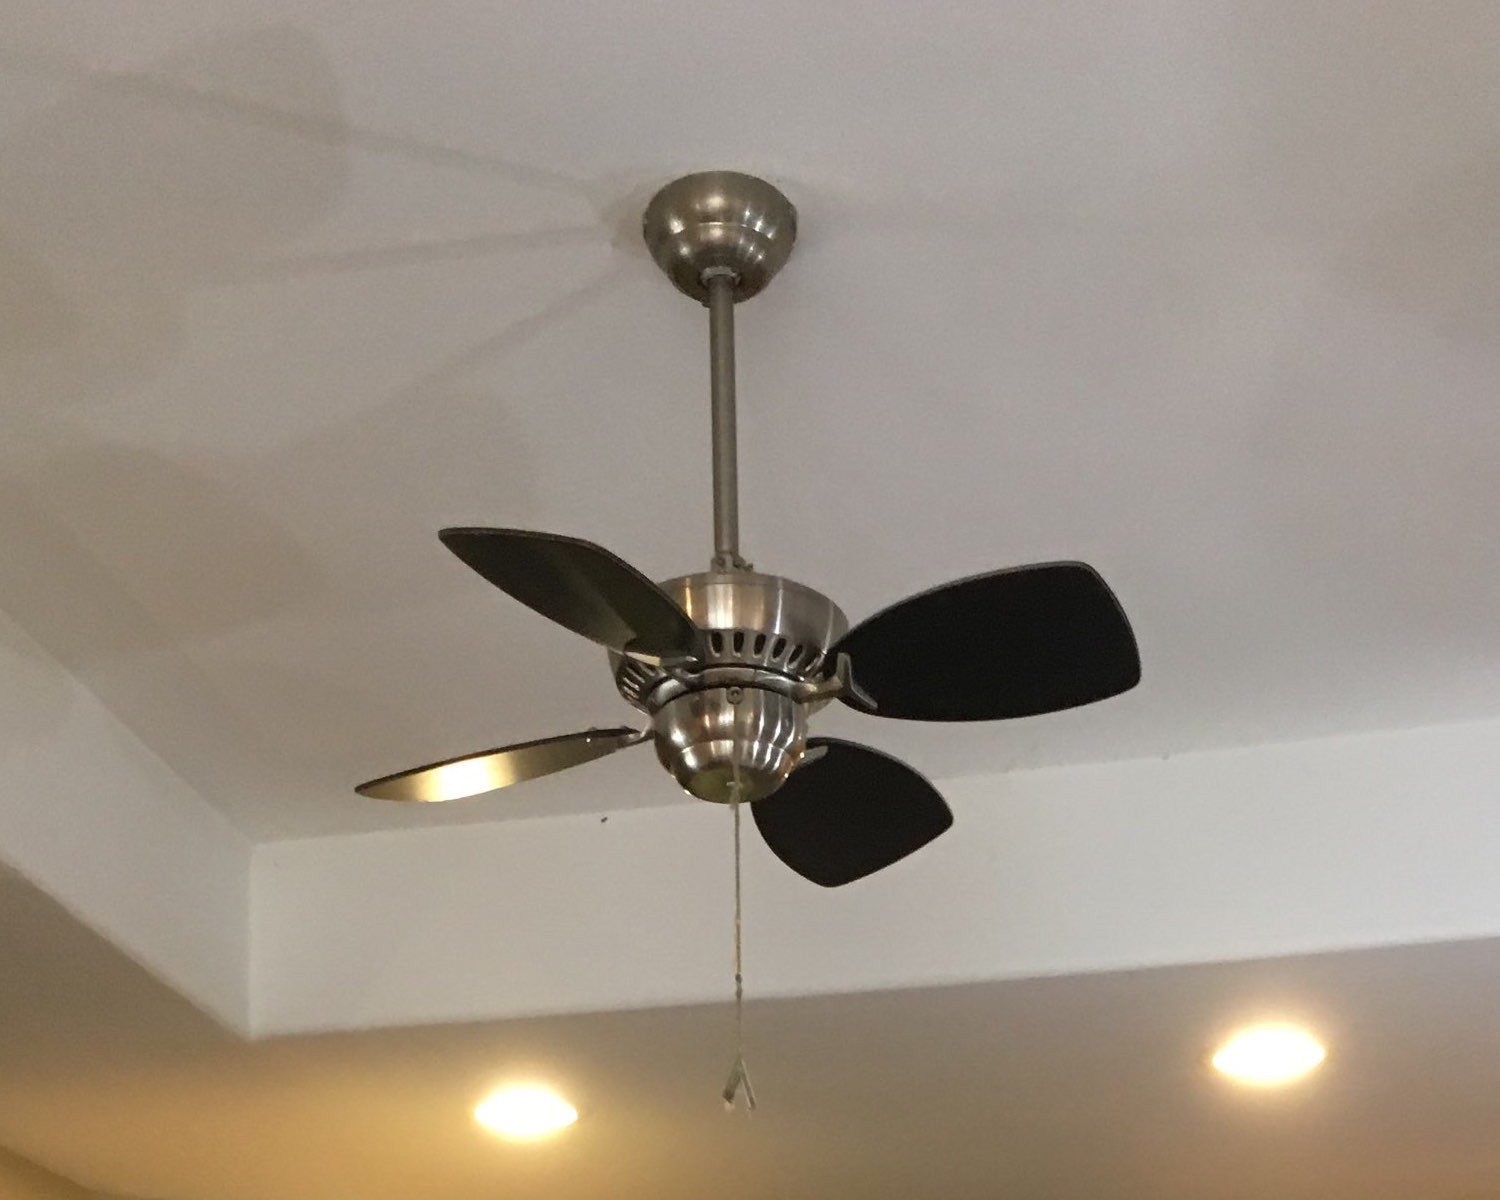 Ceiling Fans With Good Lighting 7 Things You May Not Know About Ceiling Fans Energy Vanguard